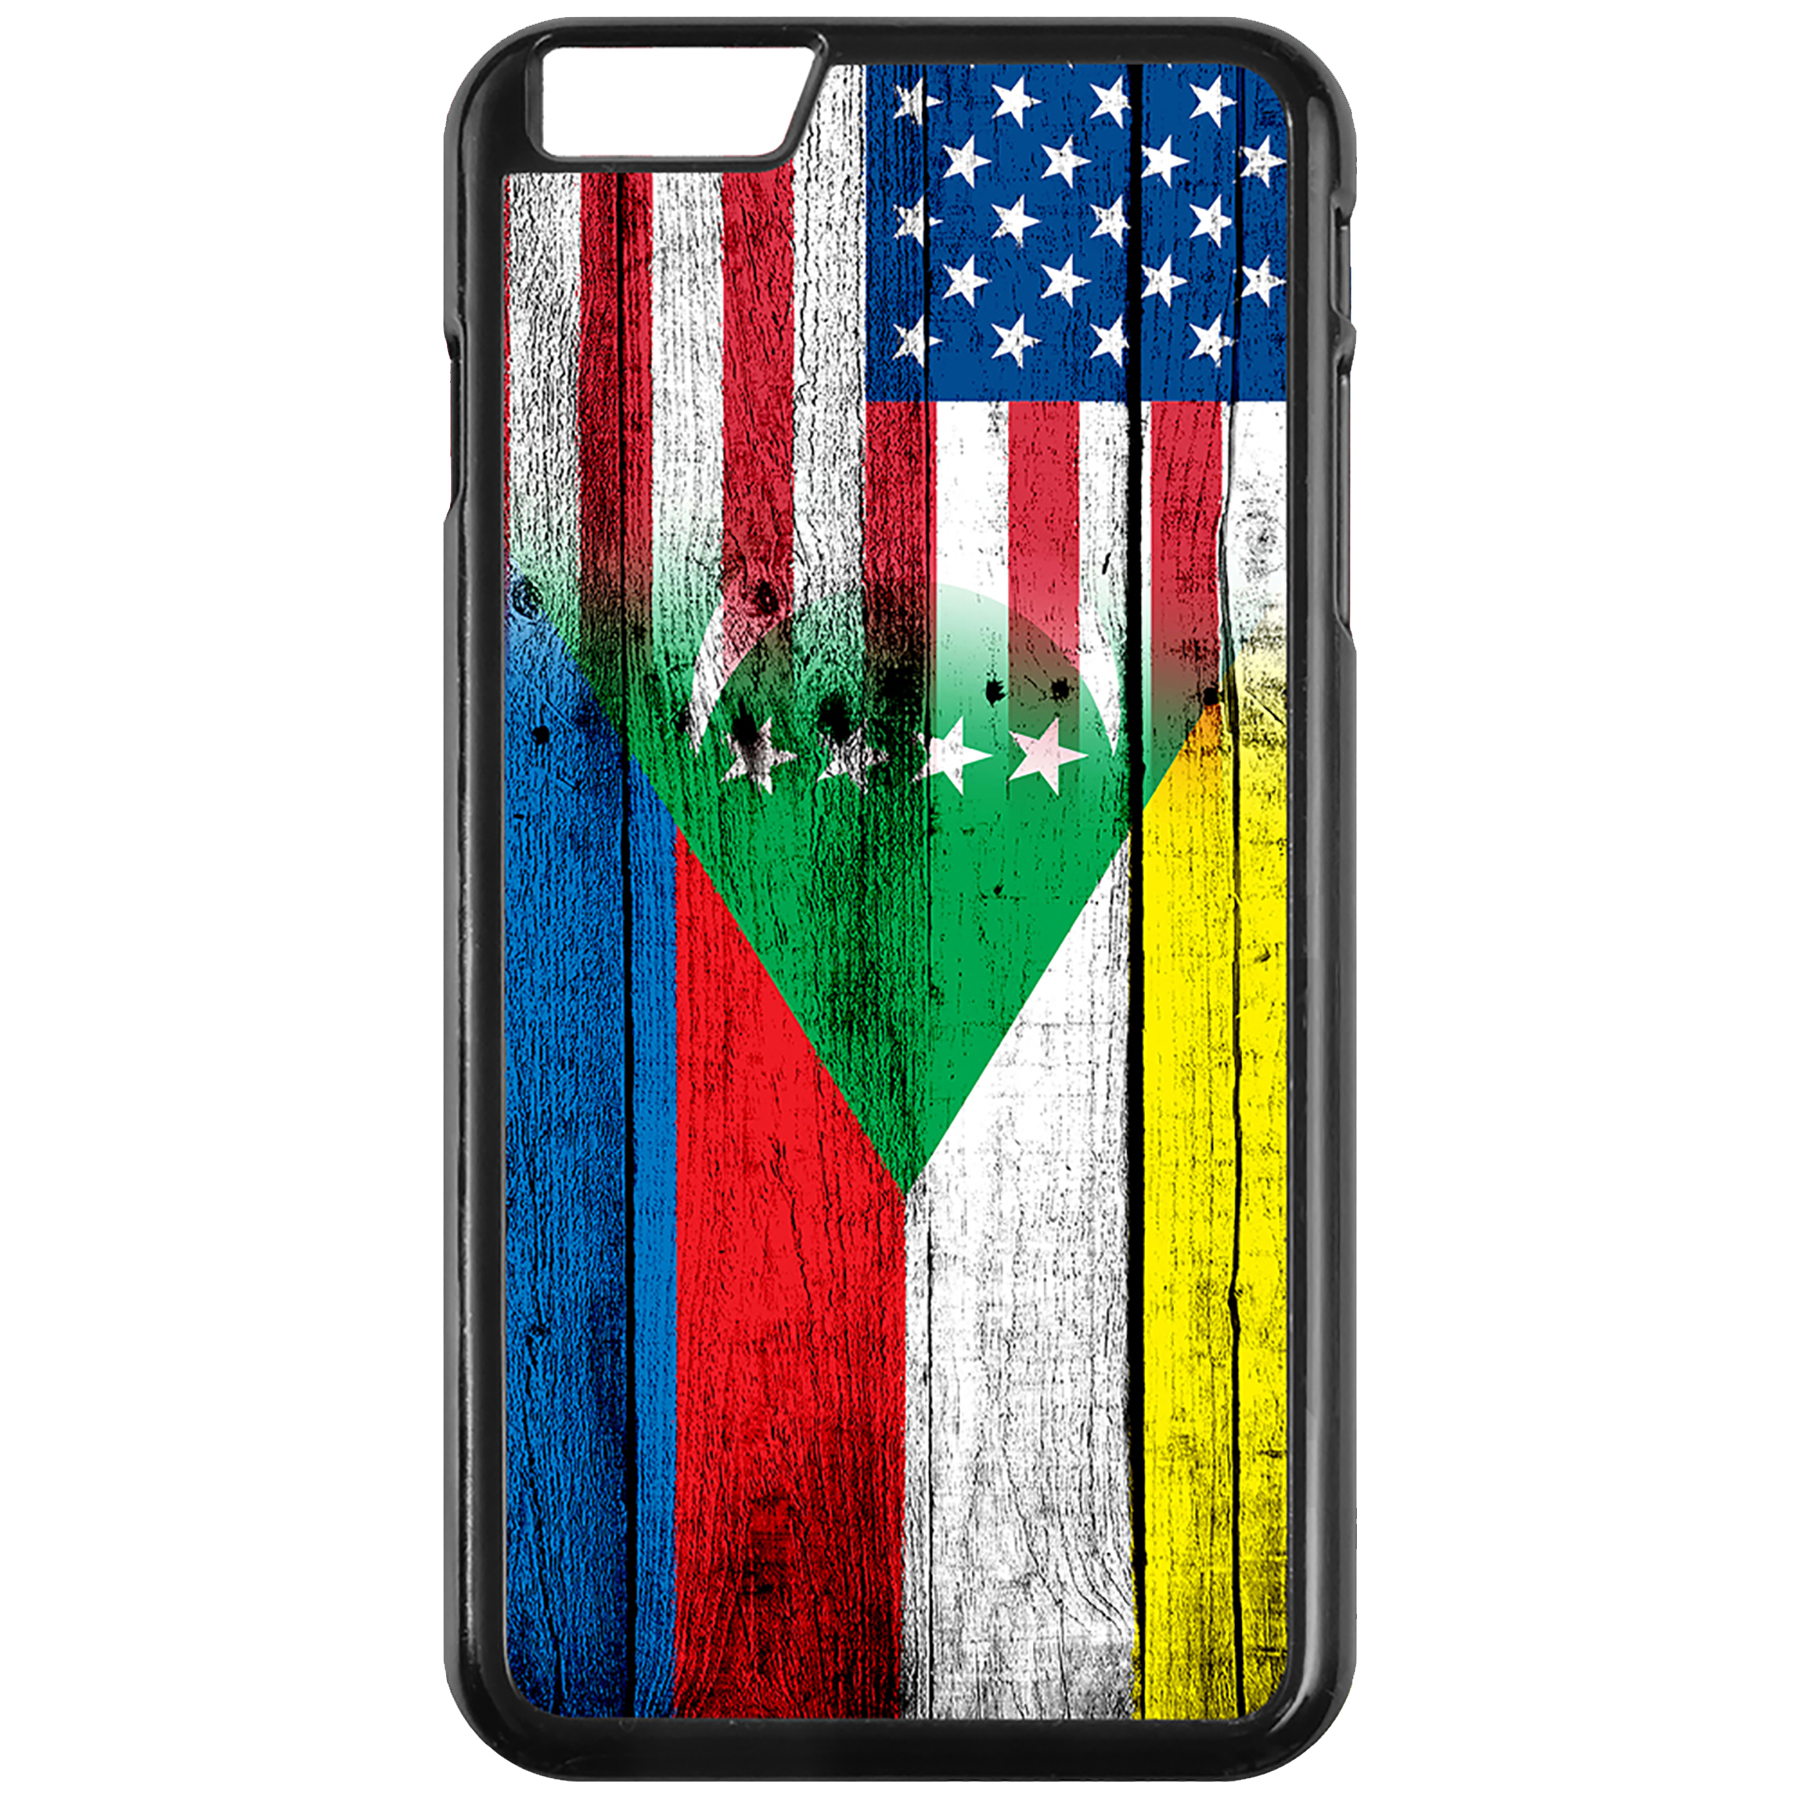 Apple-iPhone-Case-with-Flag-of-Comoros-Comorian-Many-Design-Options thumbnail 18